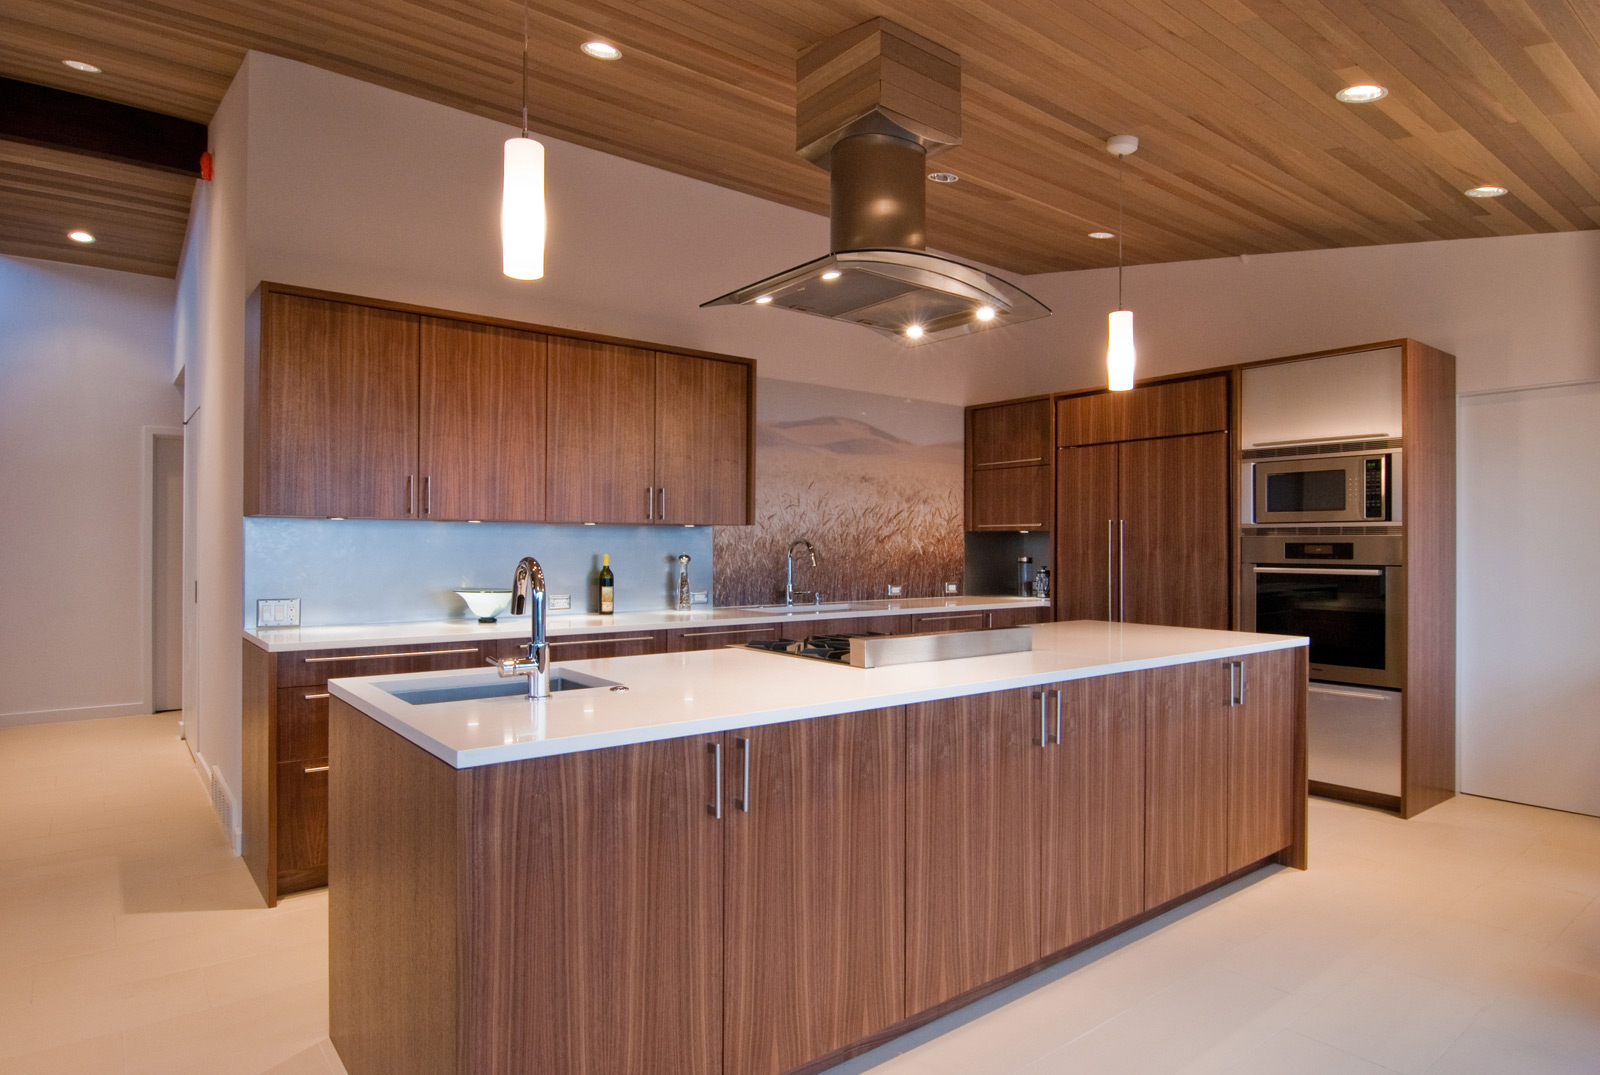 5 modern kitchen designs principles build blog for Photos of new kitchen designs